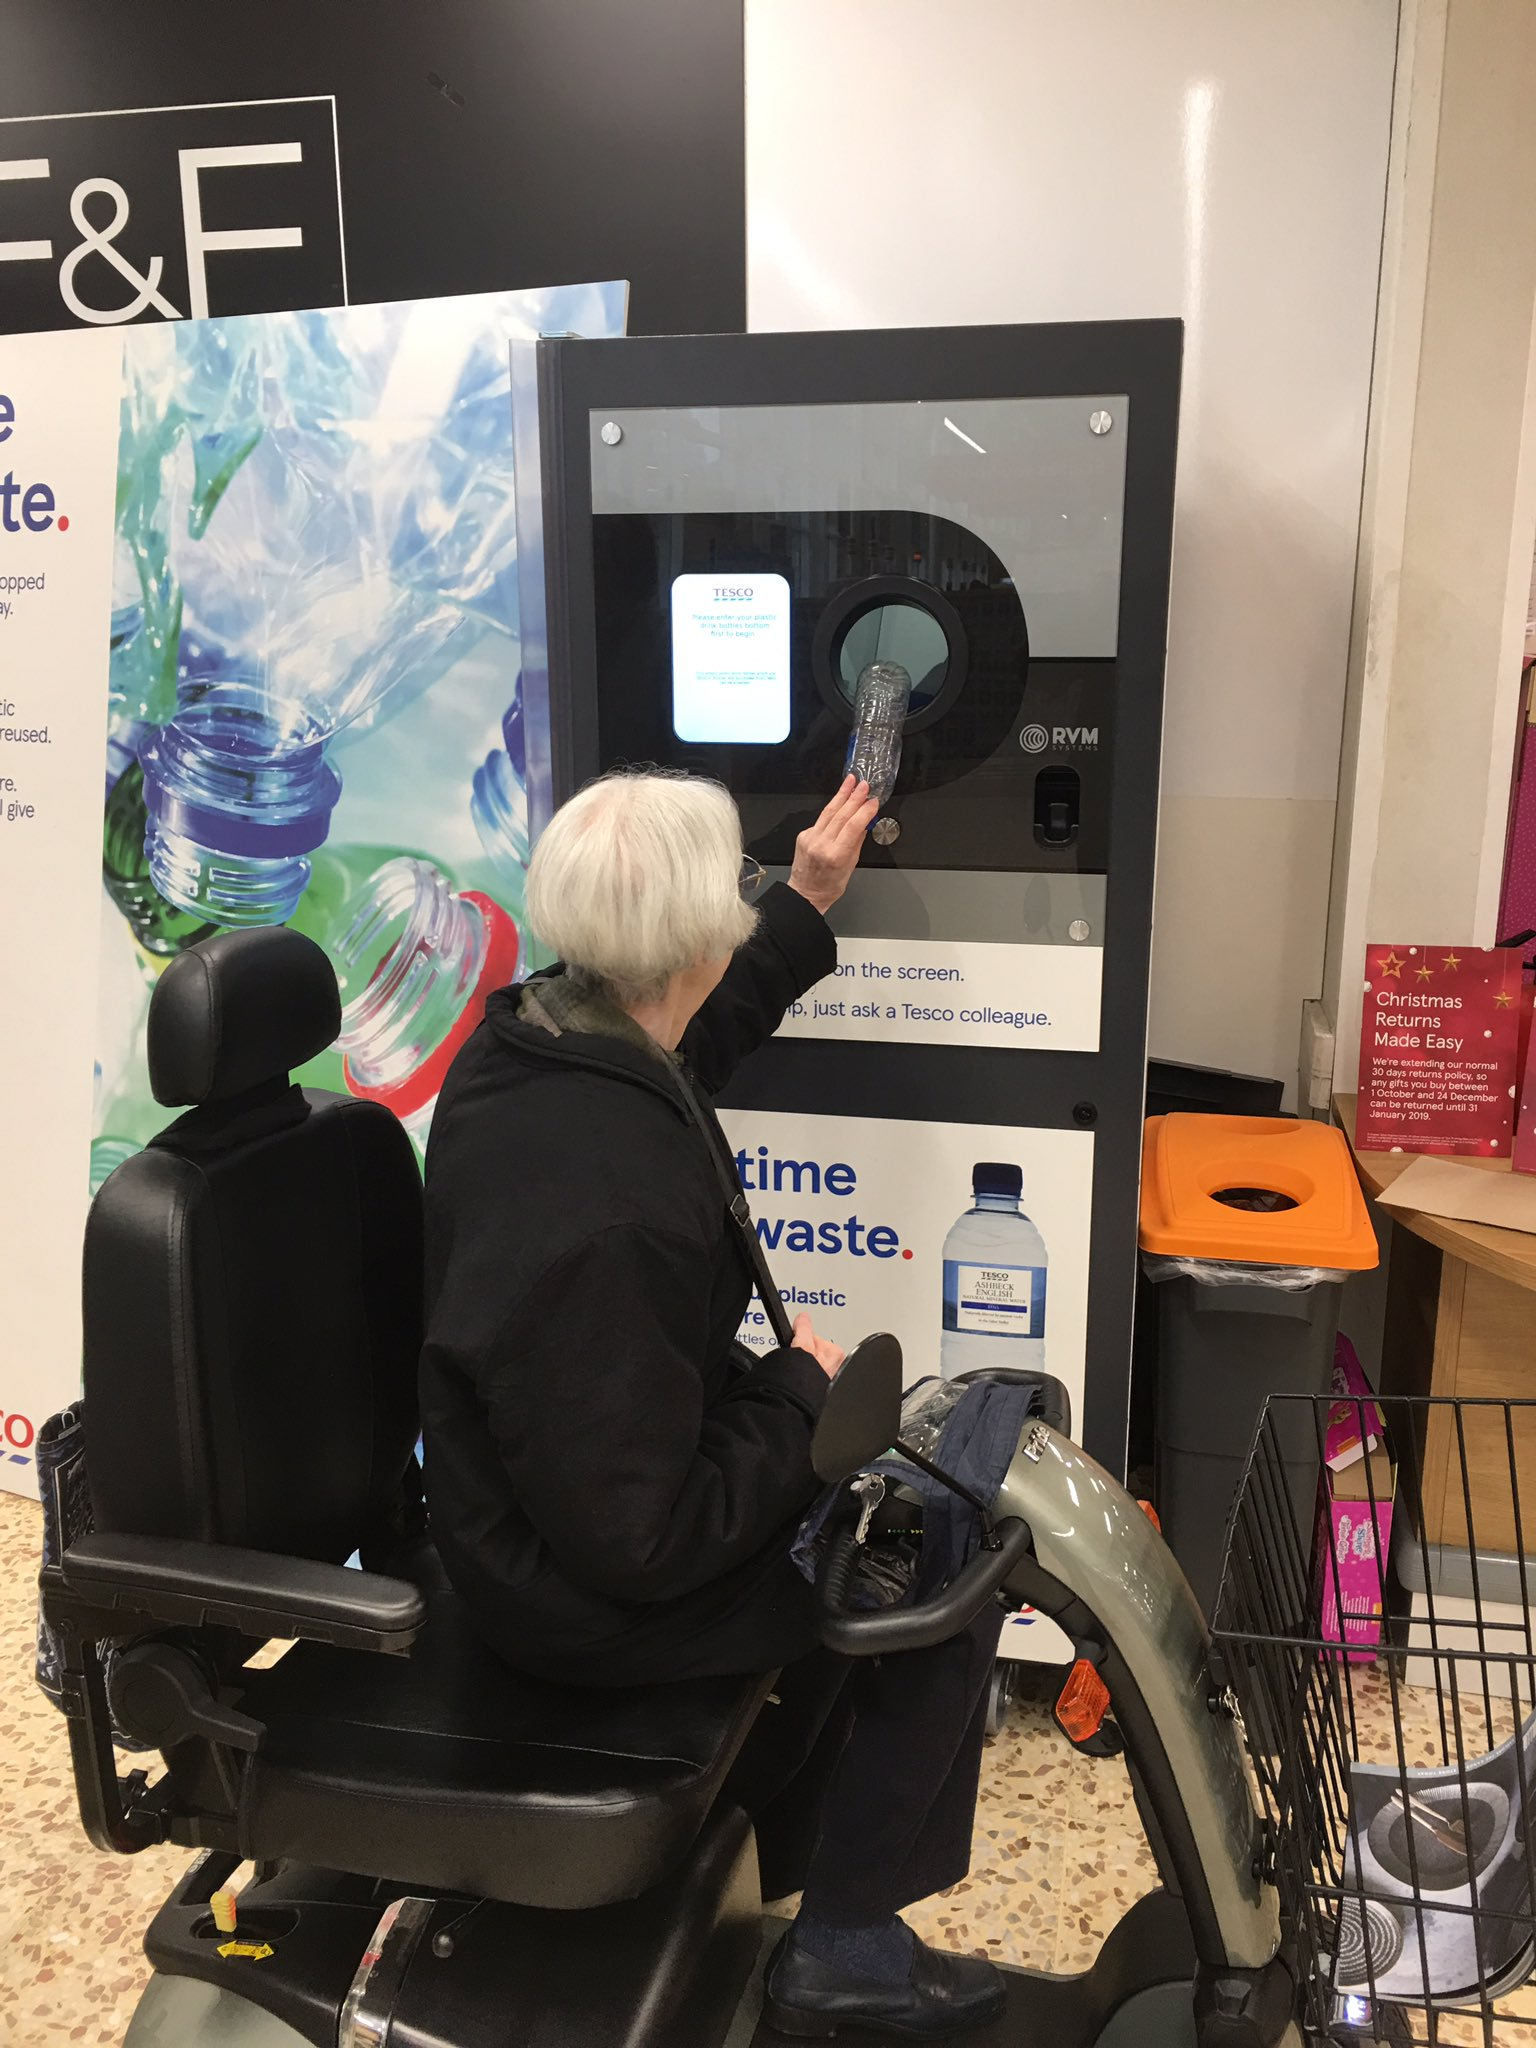 Tesco Borehamwood this was the very First Reverse Vending Machine installed in-store by Tesco